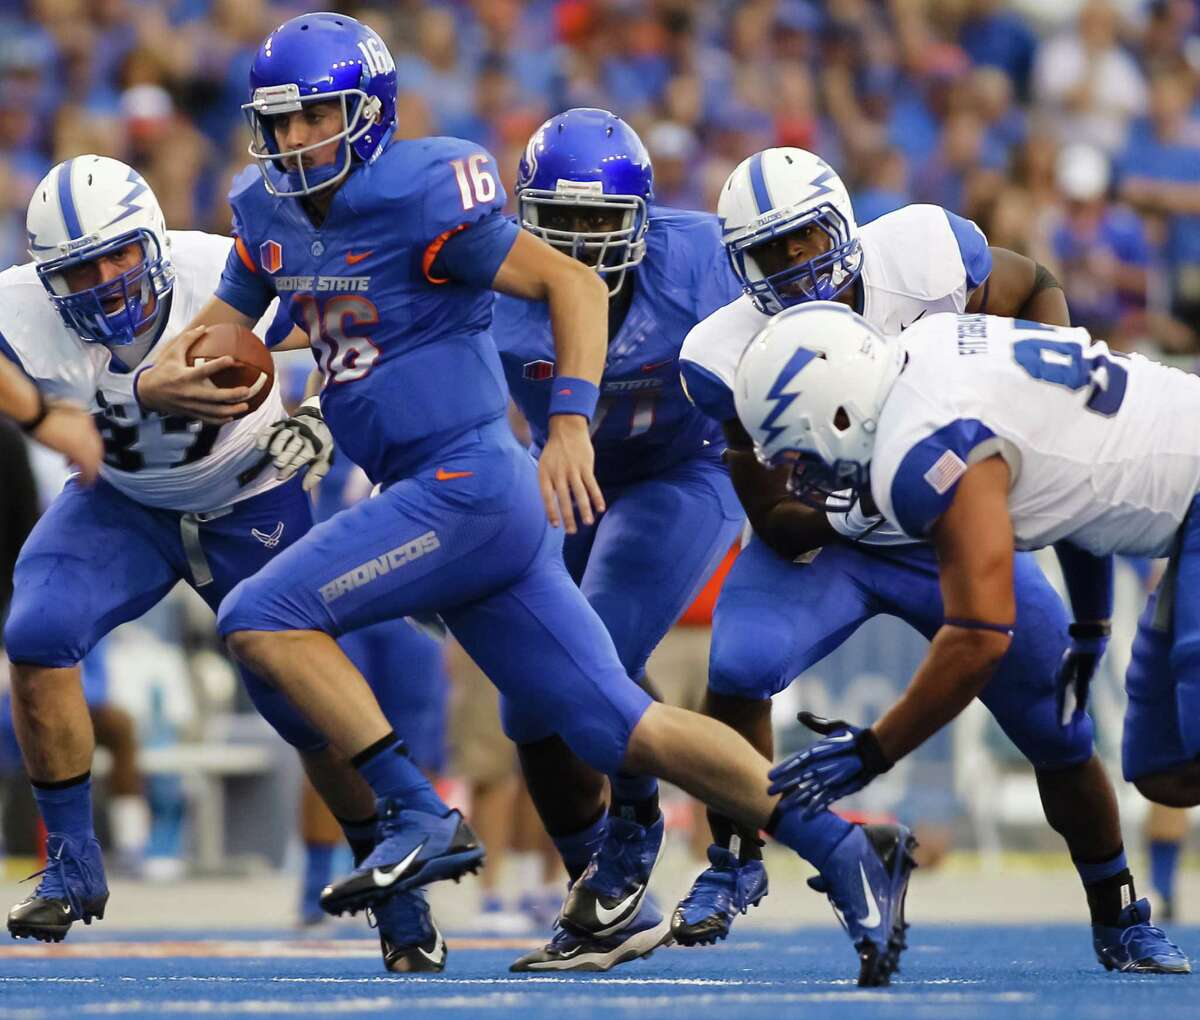 Boise State quarterback Joe Southwick, who was 27 of 29 passing for 287 yards, eludes three Air Force defenders.